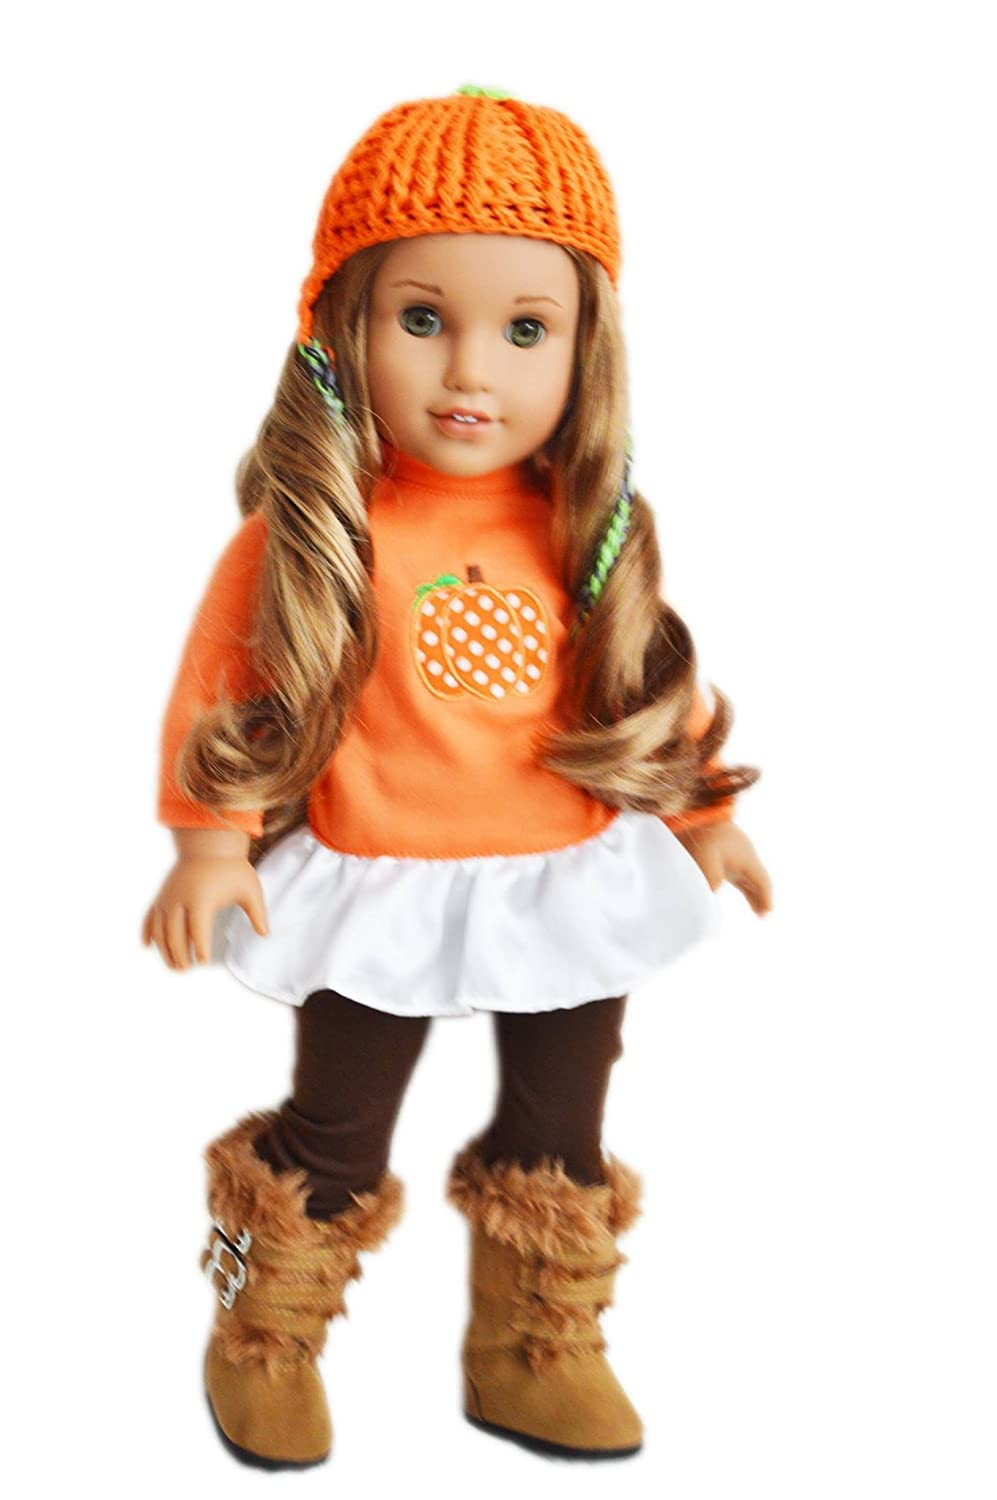 My Brittany's Fall Pumpkin Outfit for American Girl Dolls Brittany' s